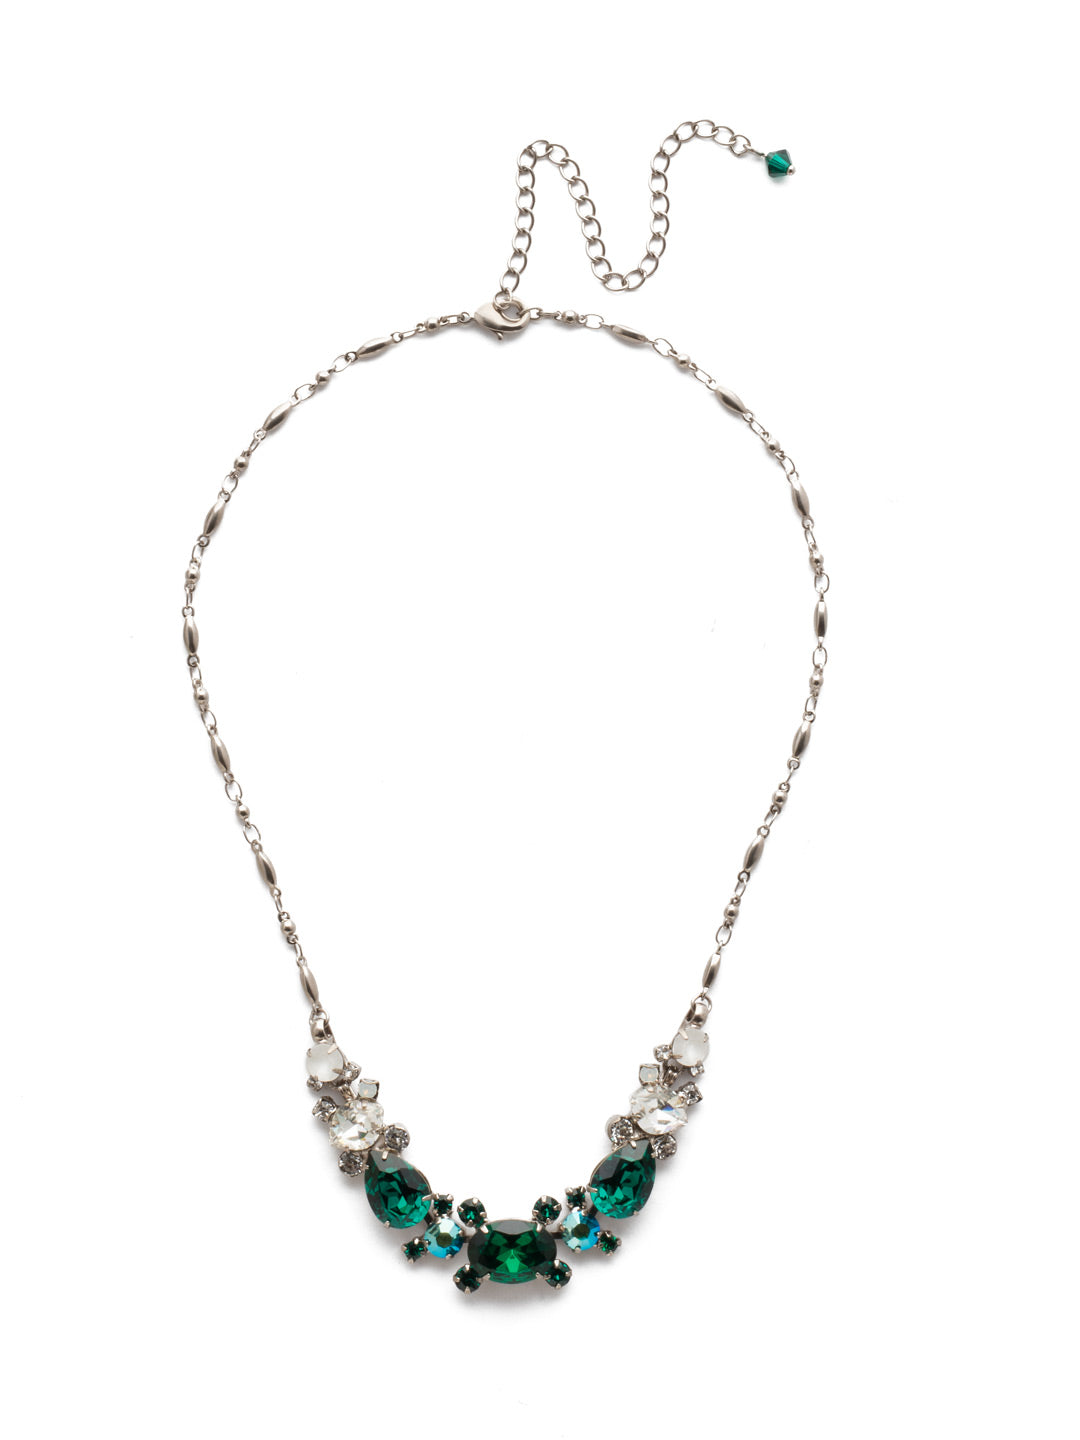 Laurel Statement Necklace - NDS49ASSNM